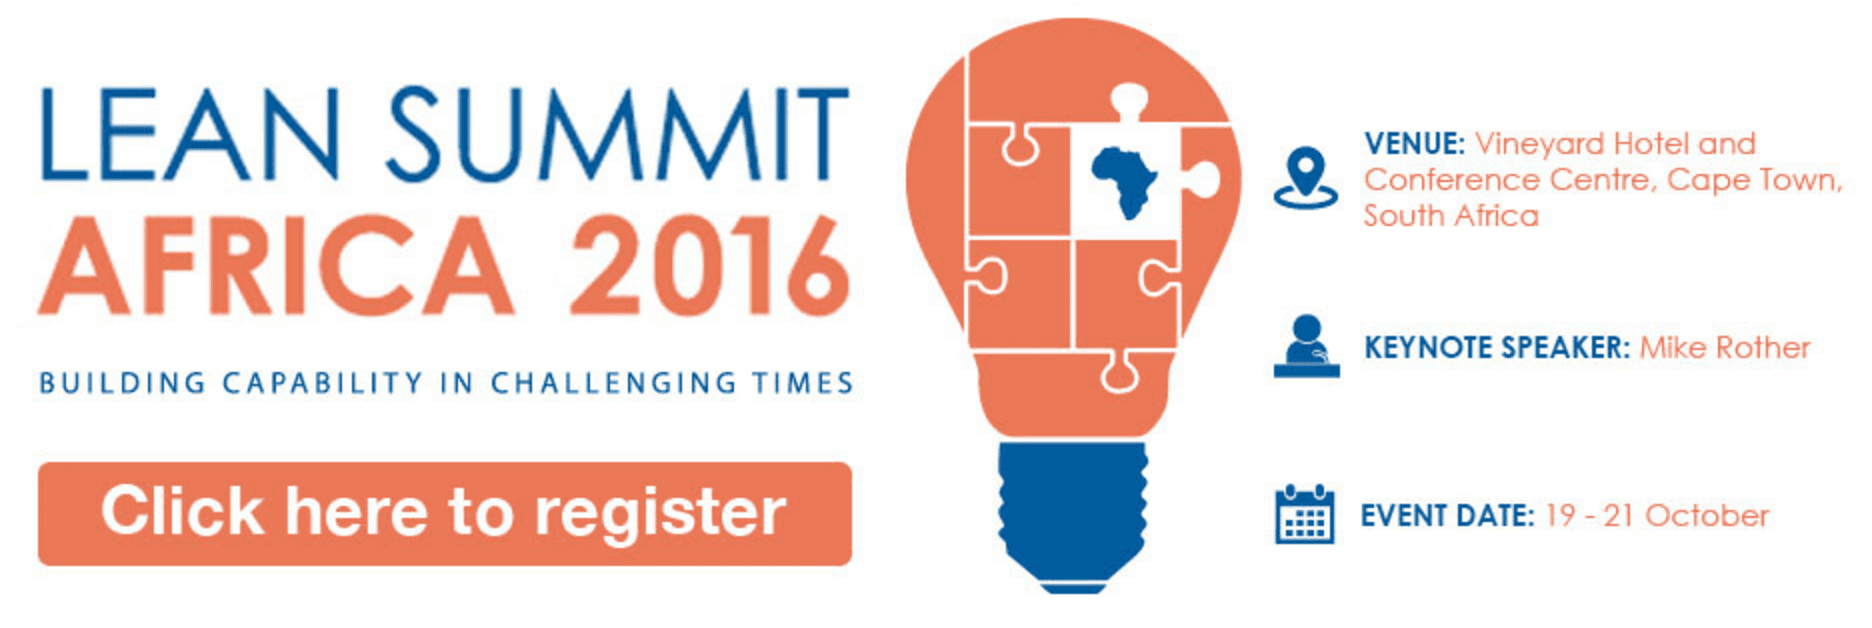 south africa summit 2016